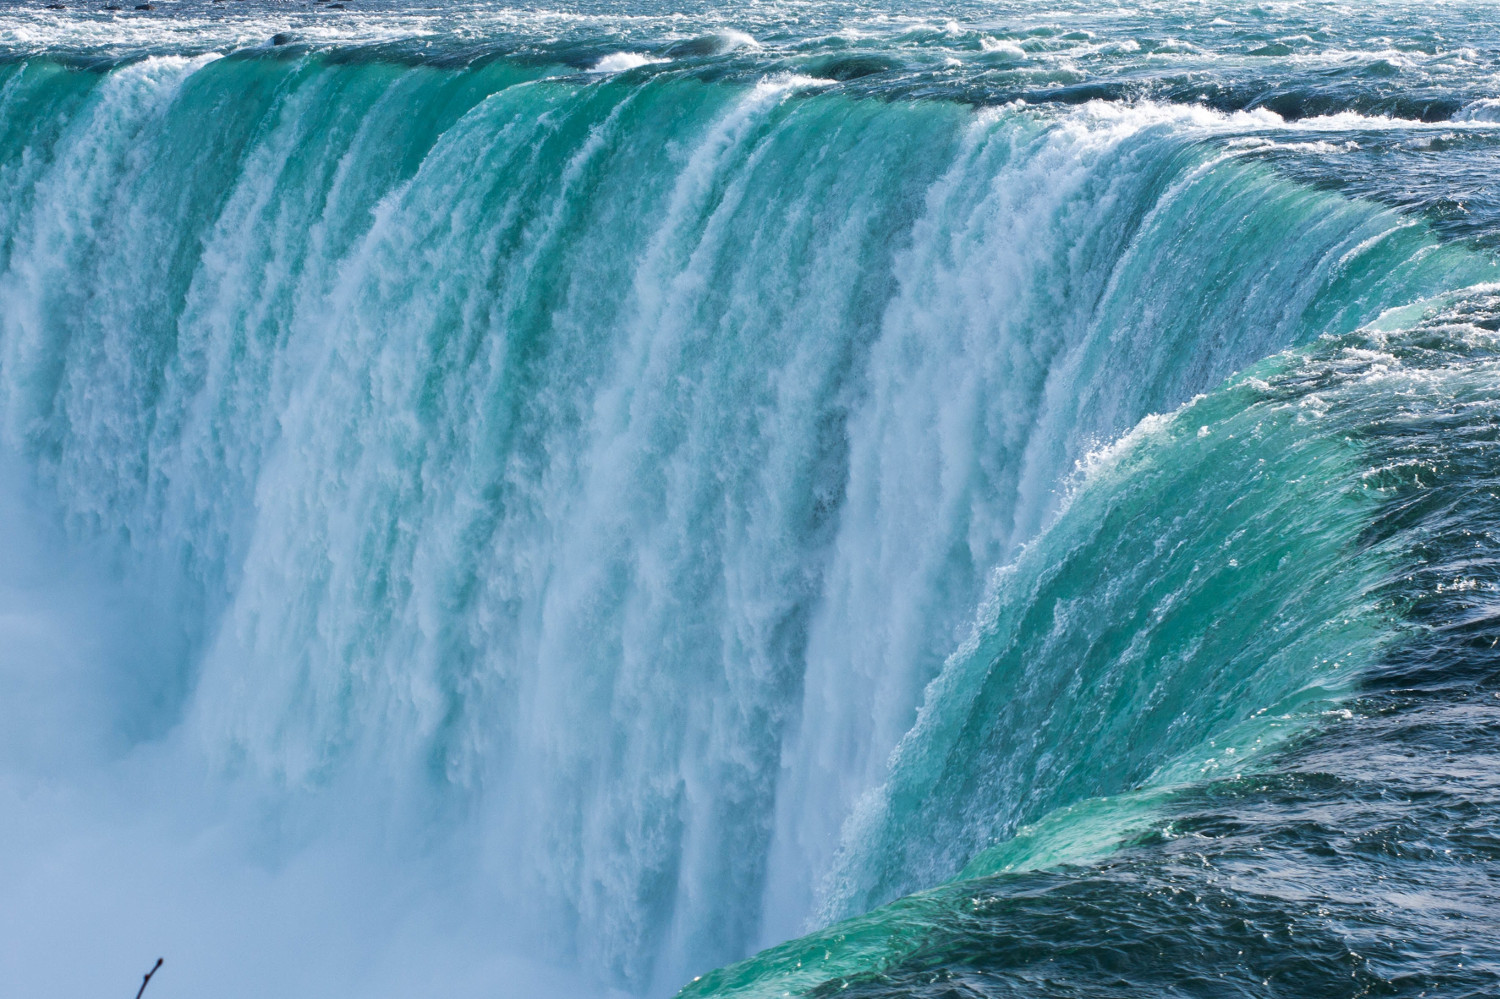 Reasons to see Niagara Falls in Canada